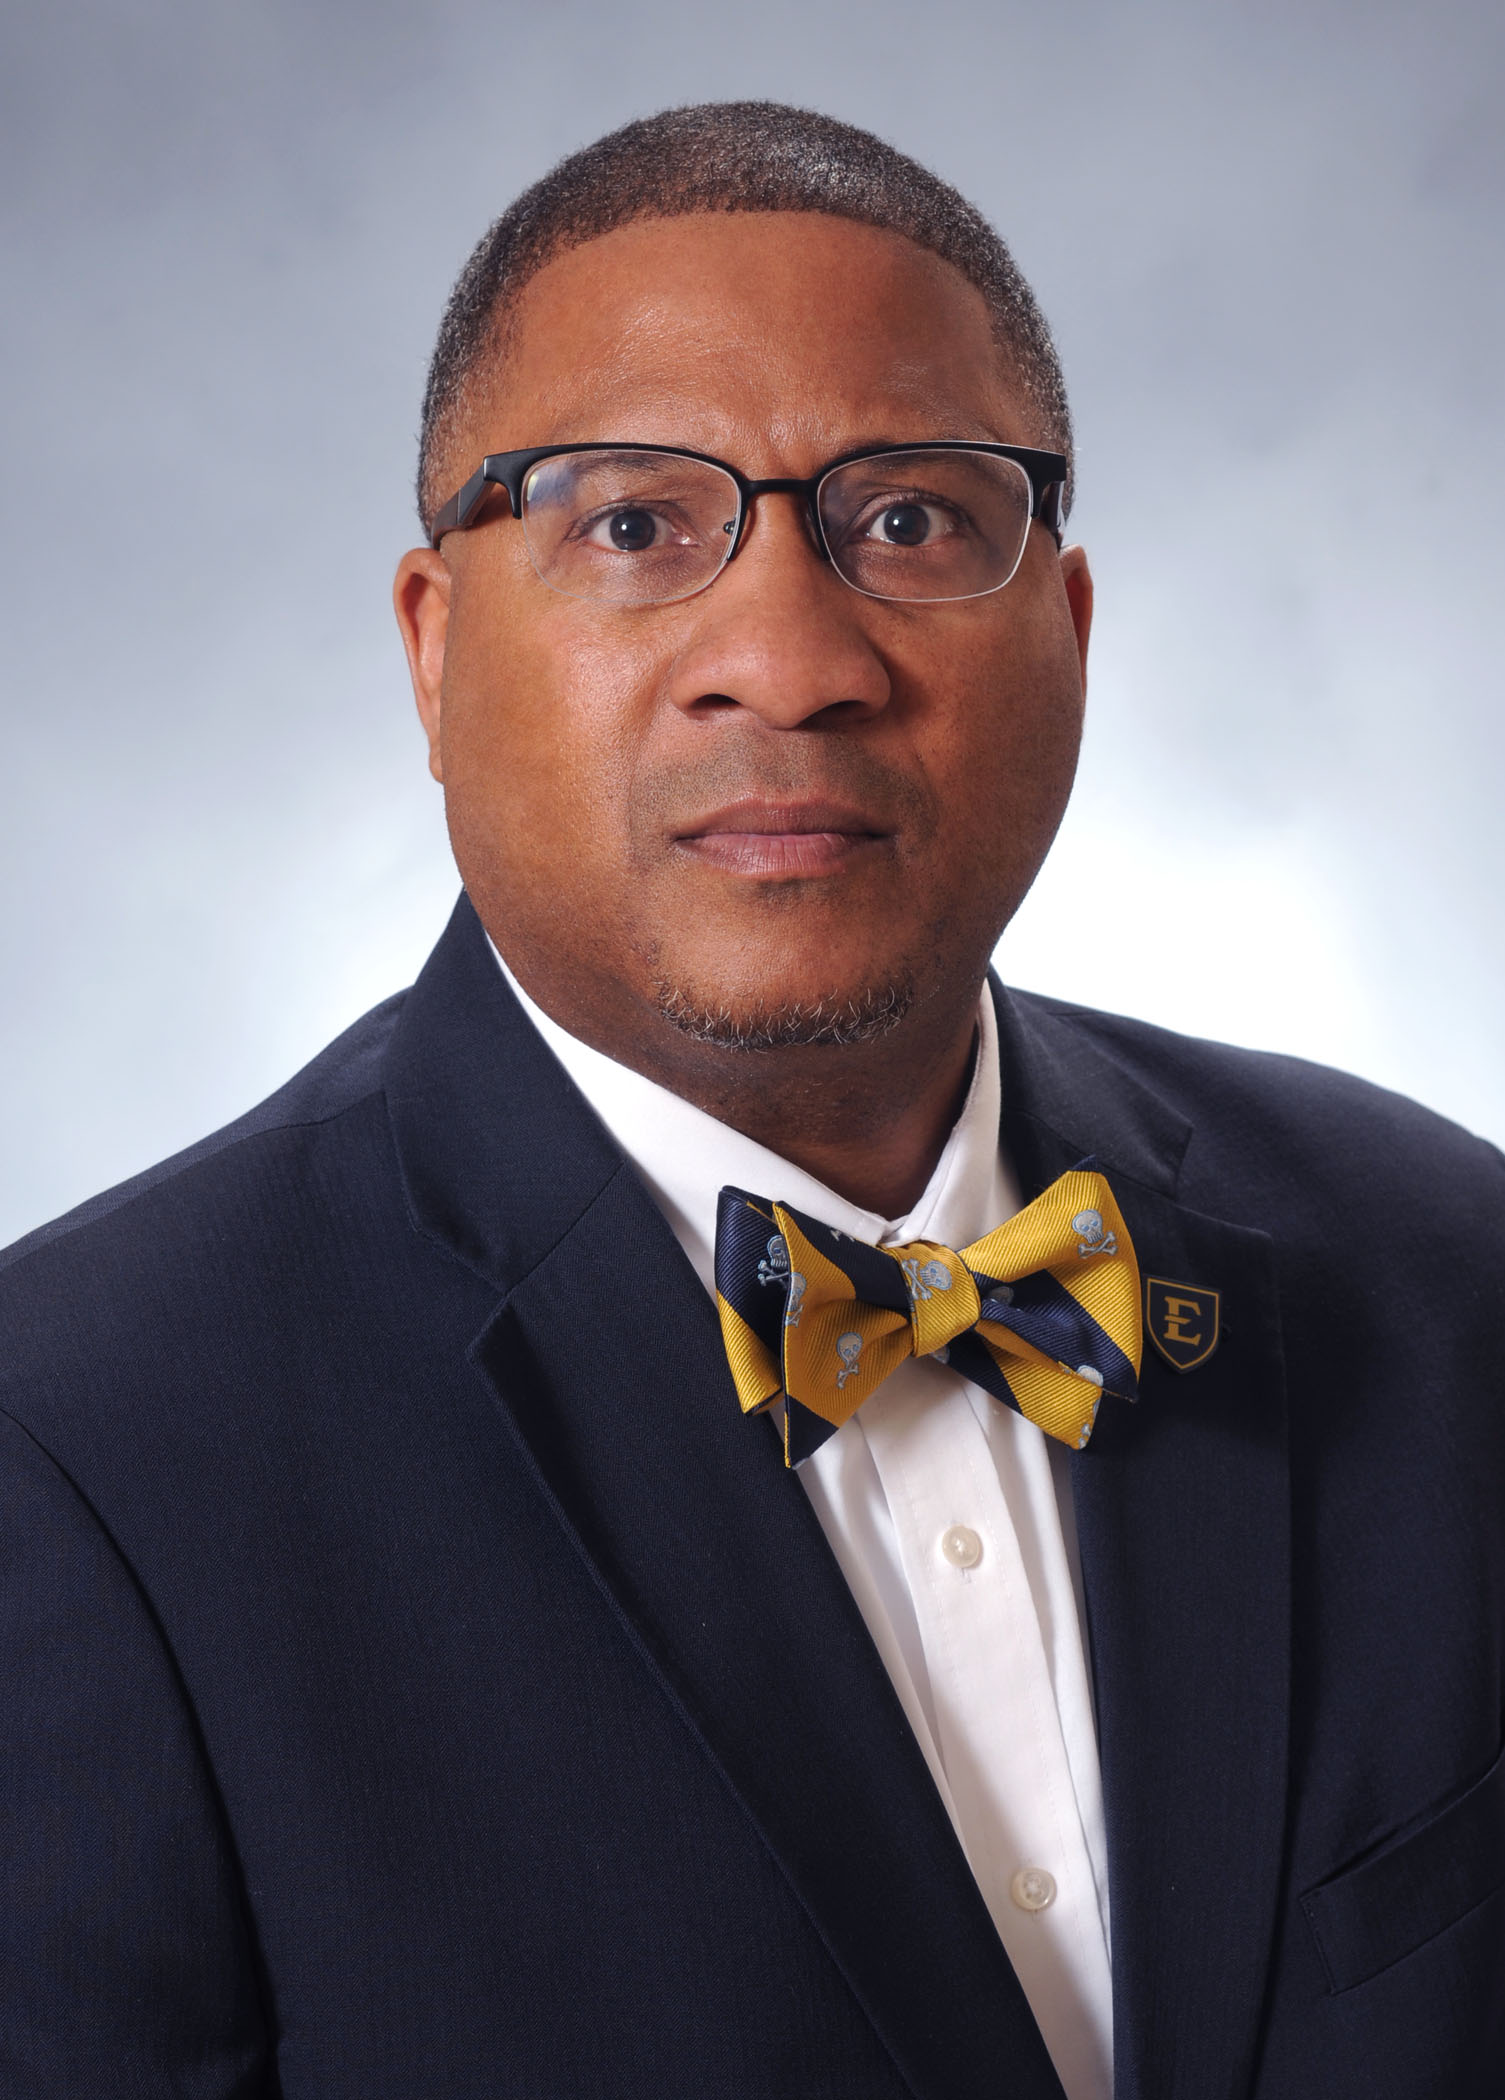 Dr. Terrence Hicks